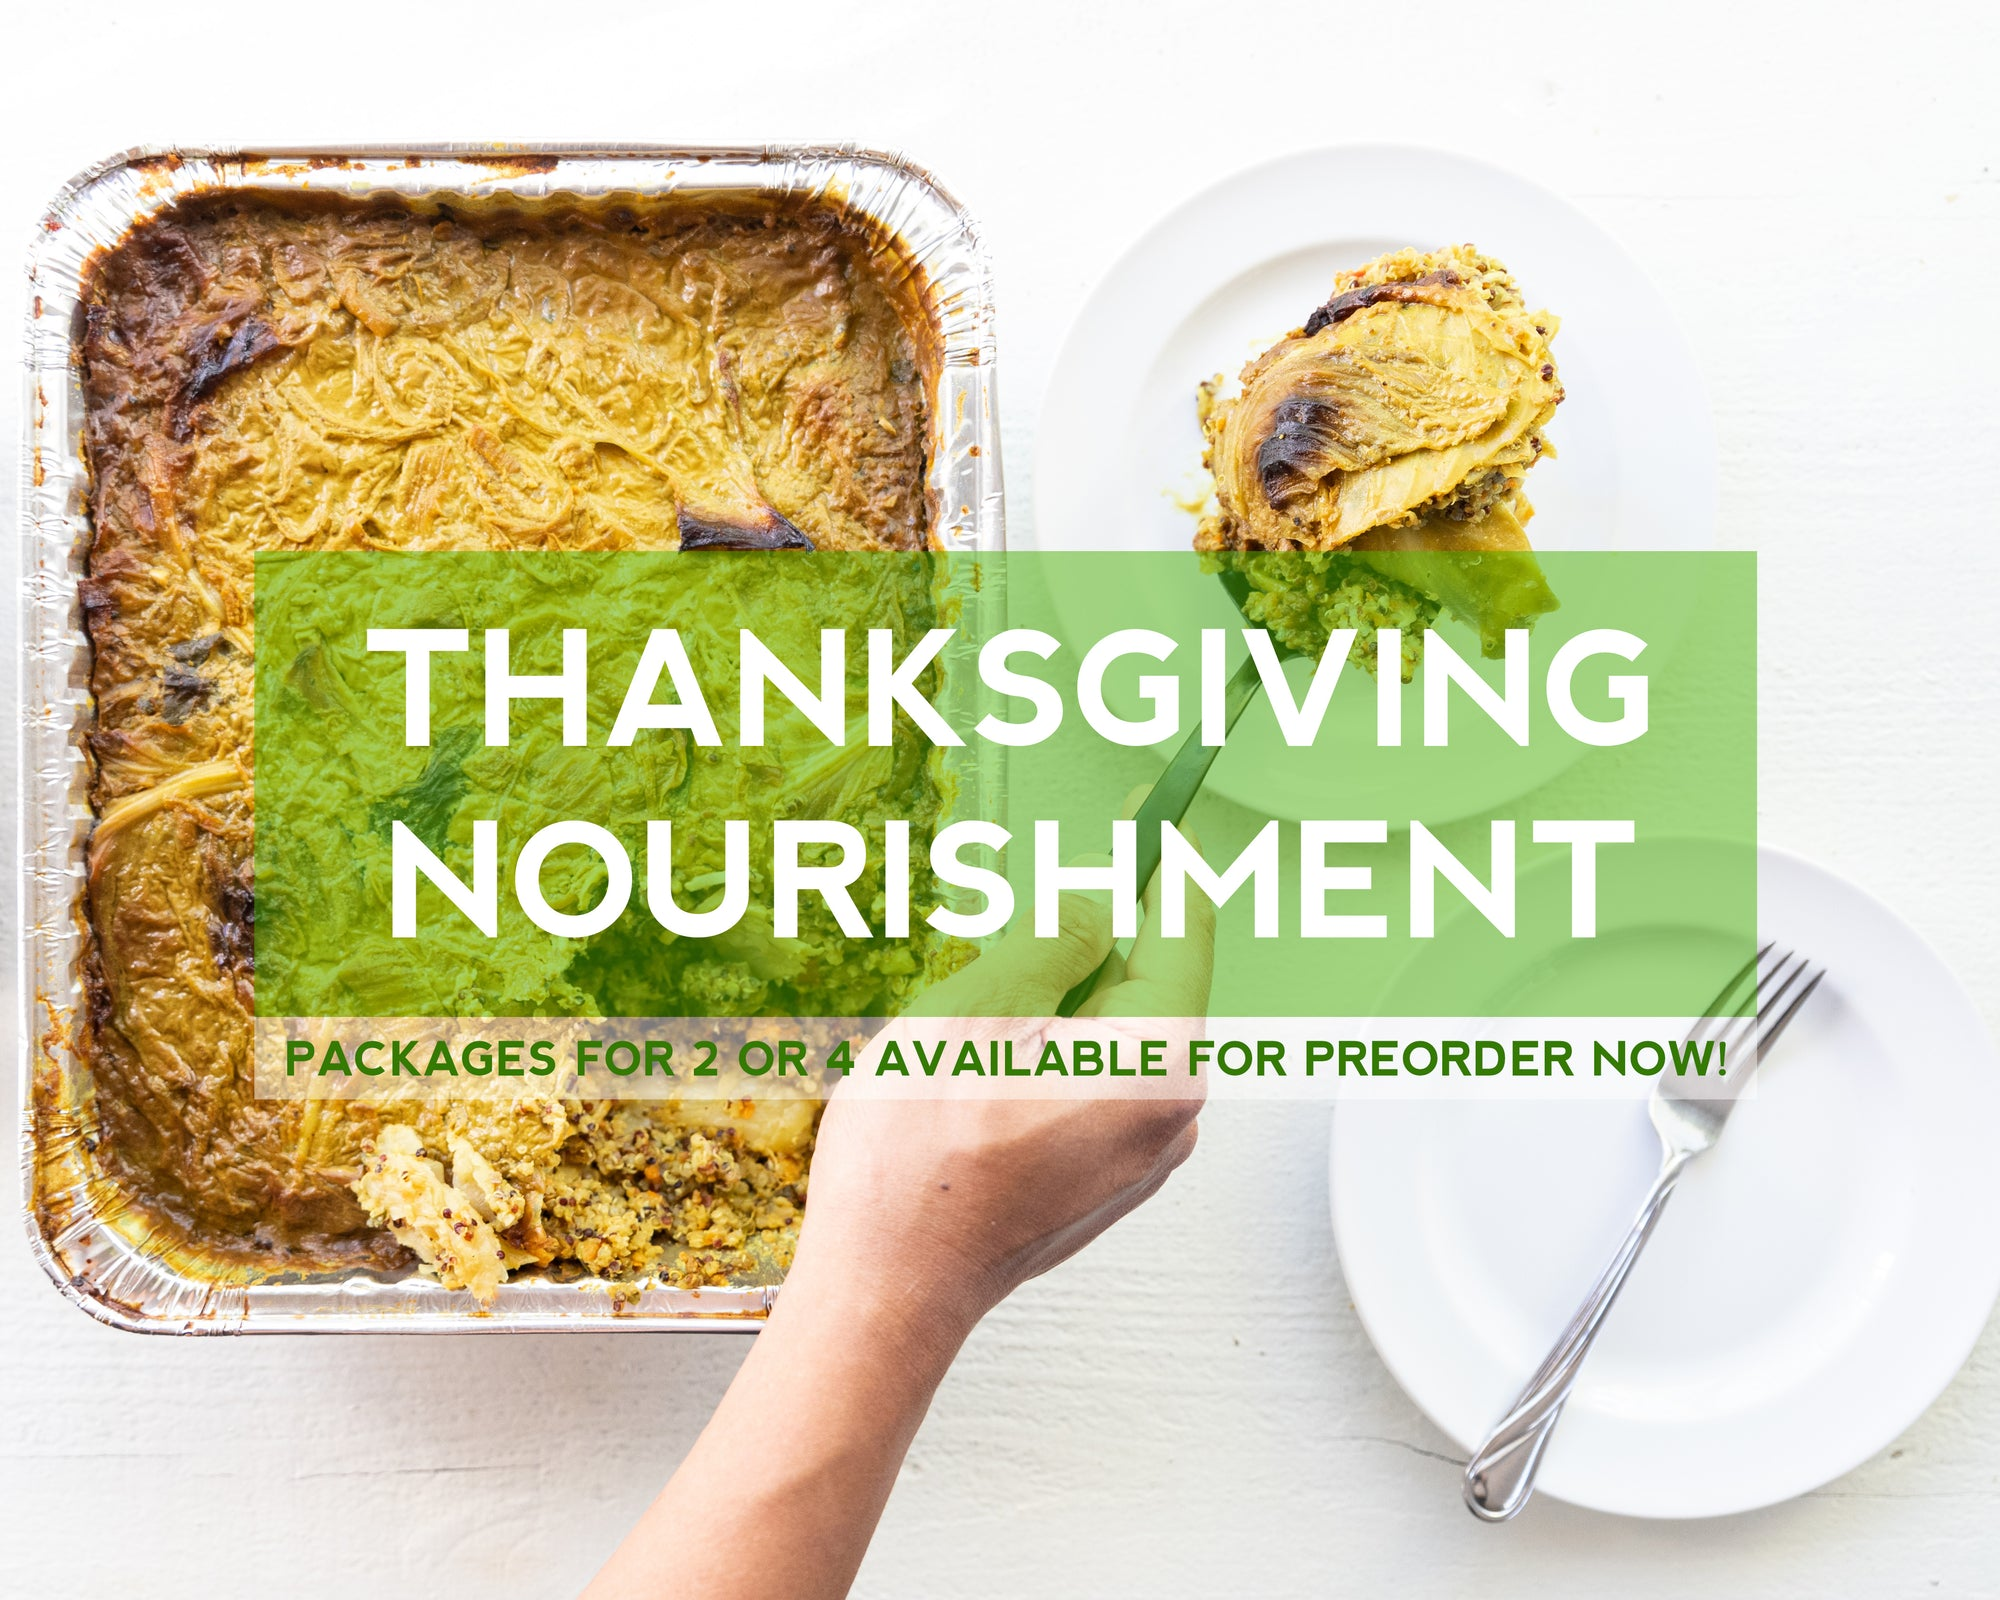 Our Thanksgiving Menu is live - preorder now for delivery November 23rd or 24th!